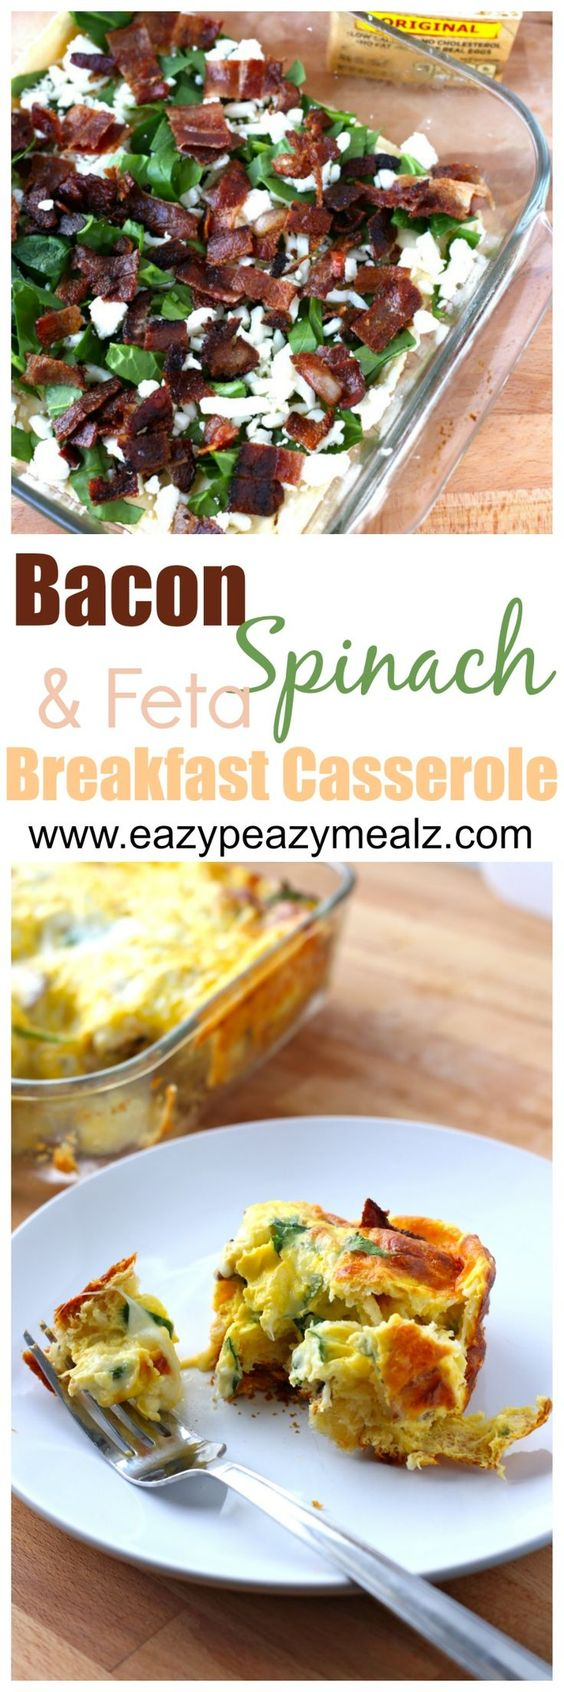 Spinach and feta, Breakfast casserole and Feta on Pinterest